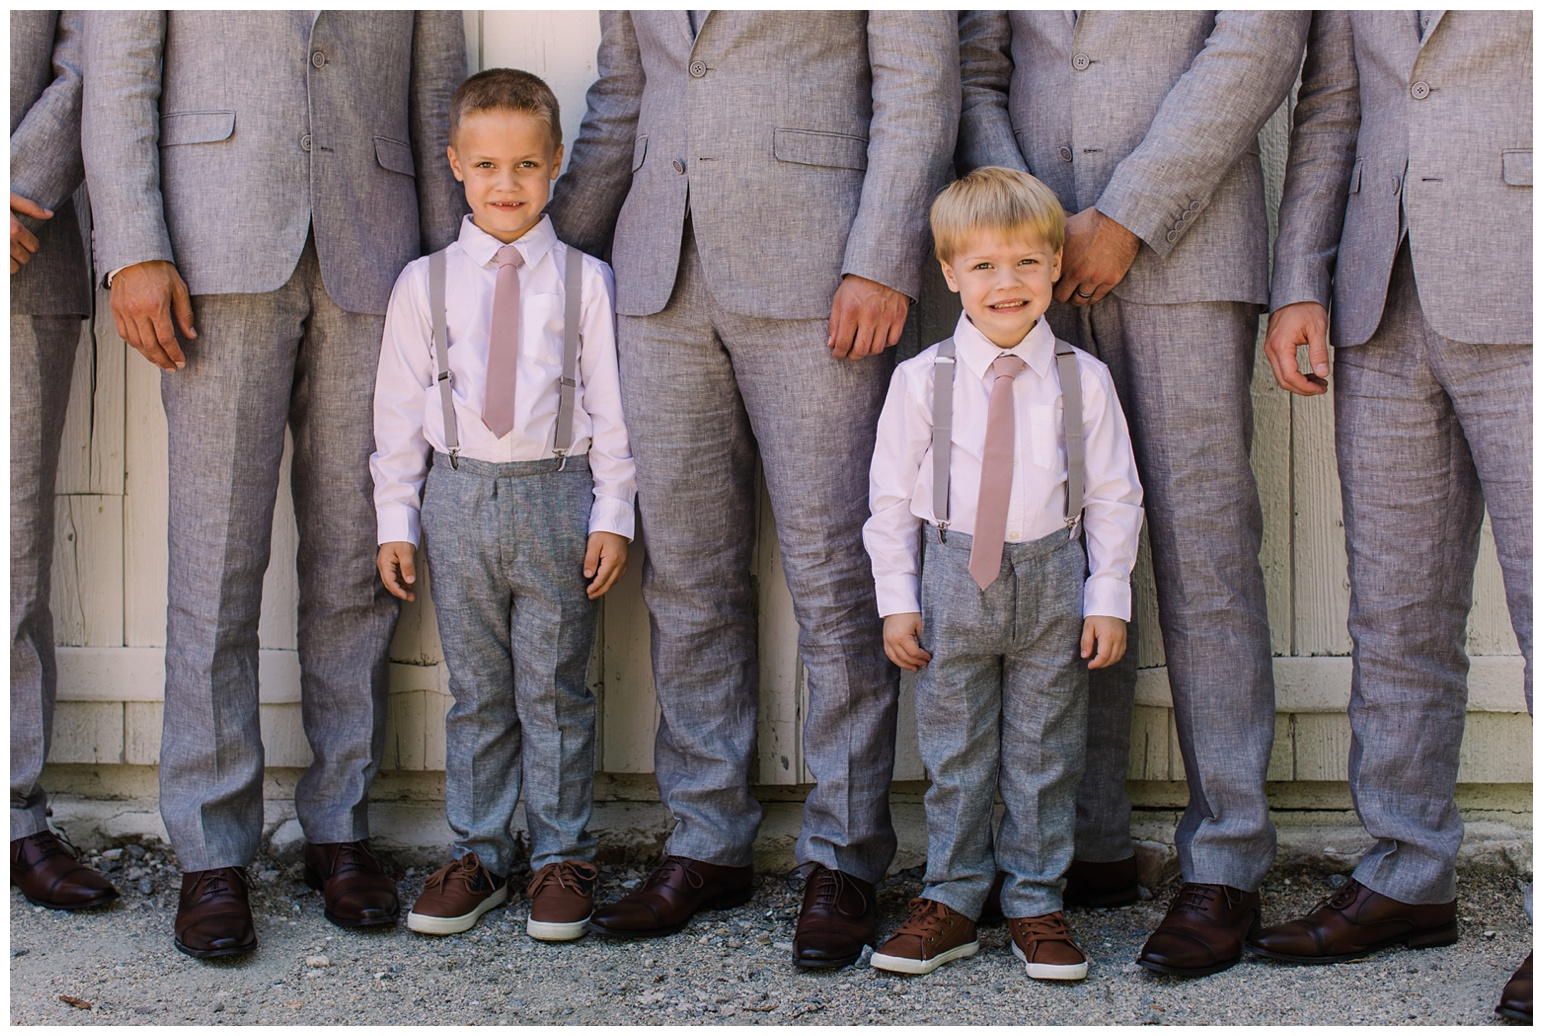 worsell manor wedding in the summer - warwick md - now featured on My Eastern Shore Wedding - coastal - sea - nautical - eastern shore - inspired wedding ideas and inspo - photo of groom and groomsmen - wedding party - in front of barn like wall door - white - formal portrait photo outdoors on maryland eastern shore - closeup of ring bearers and gray suits